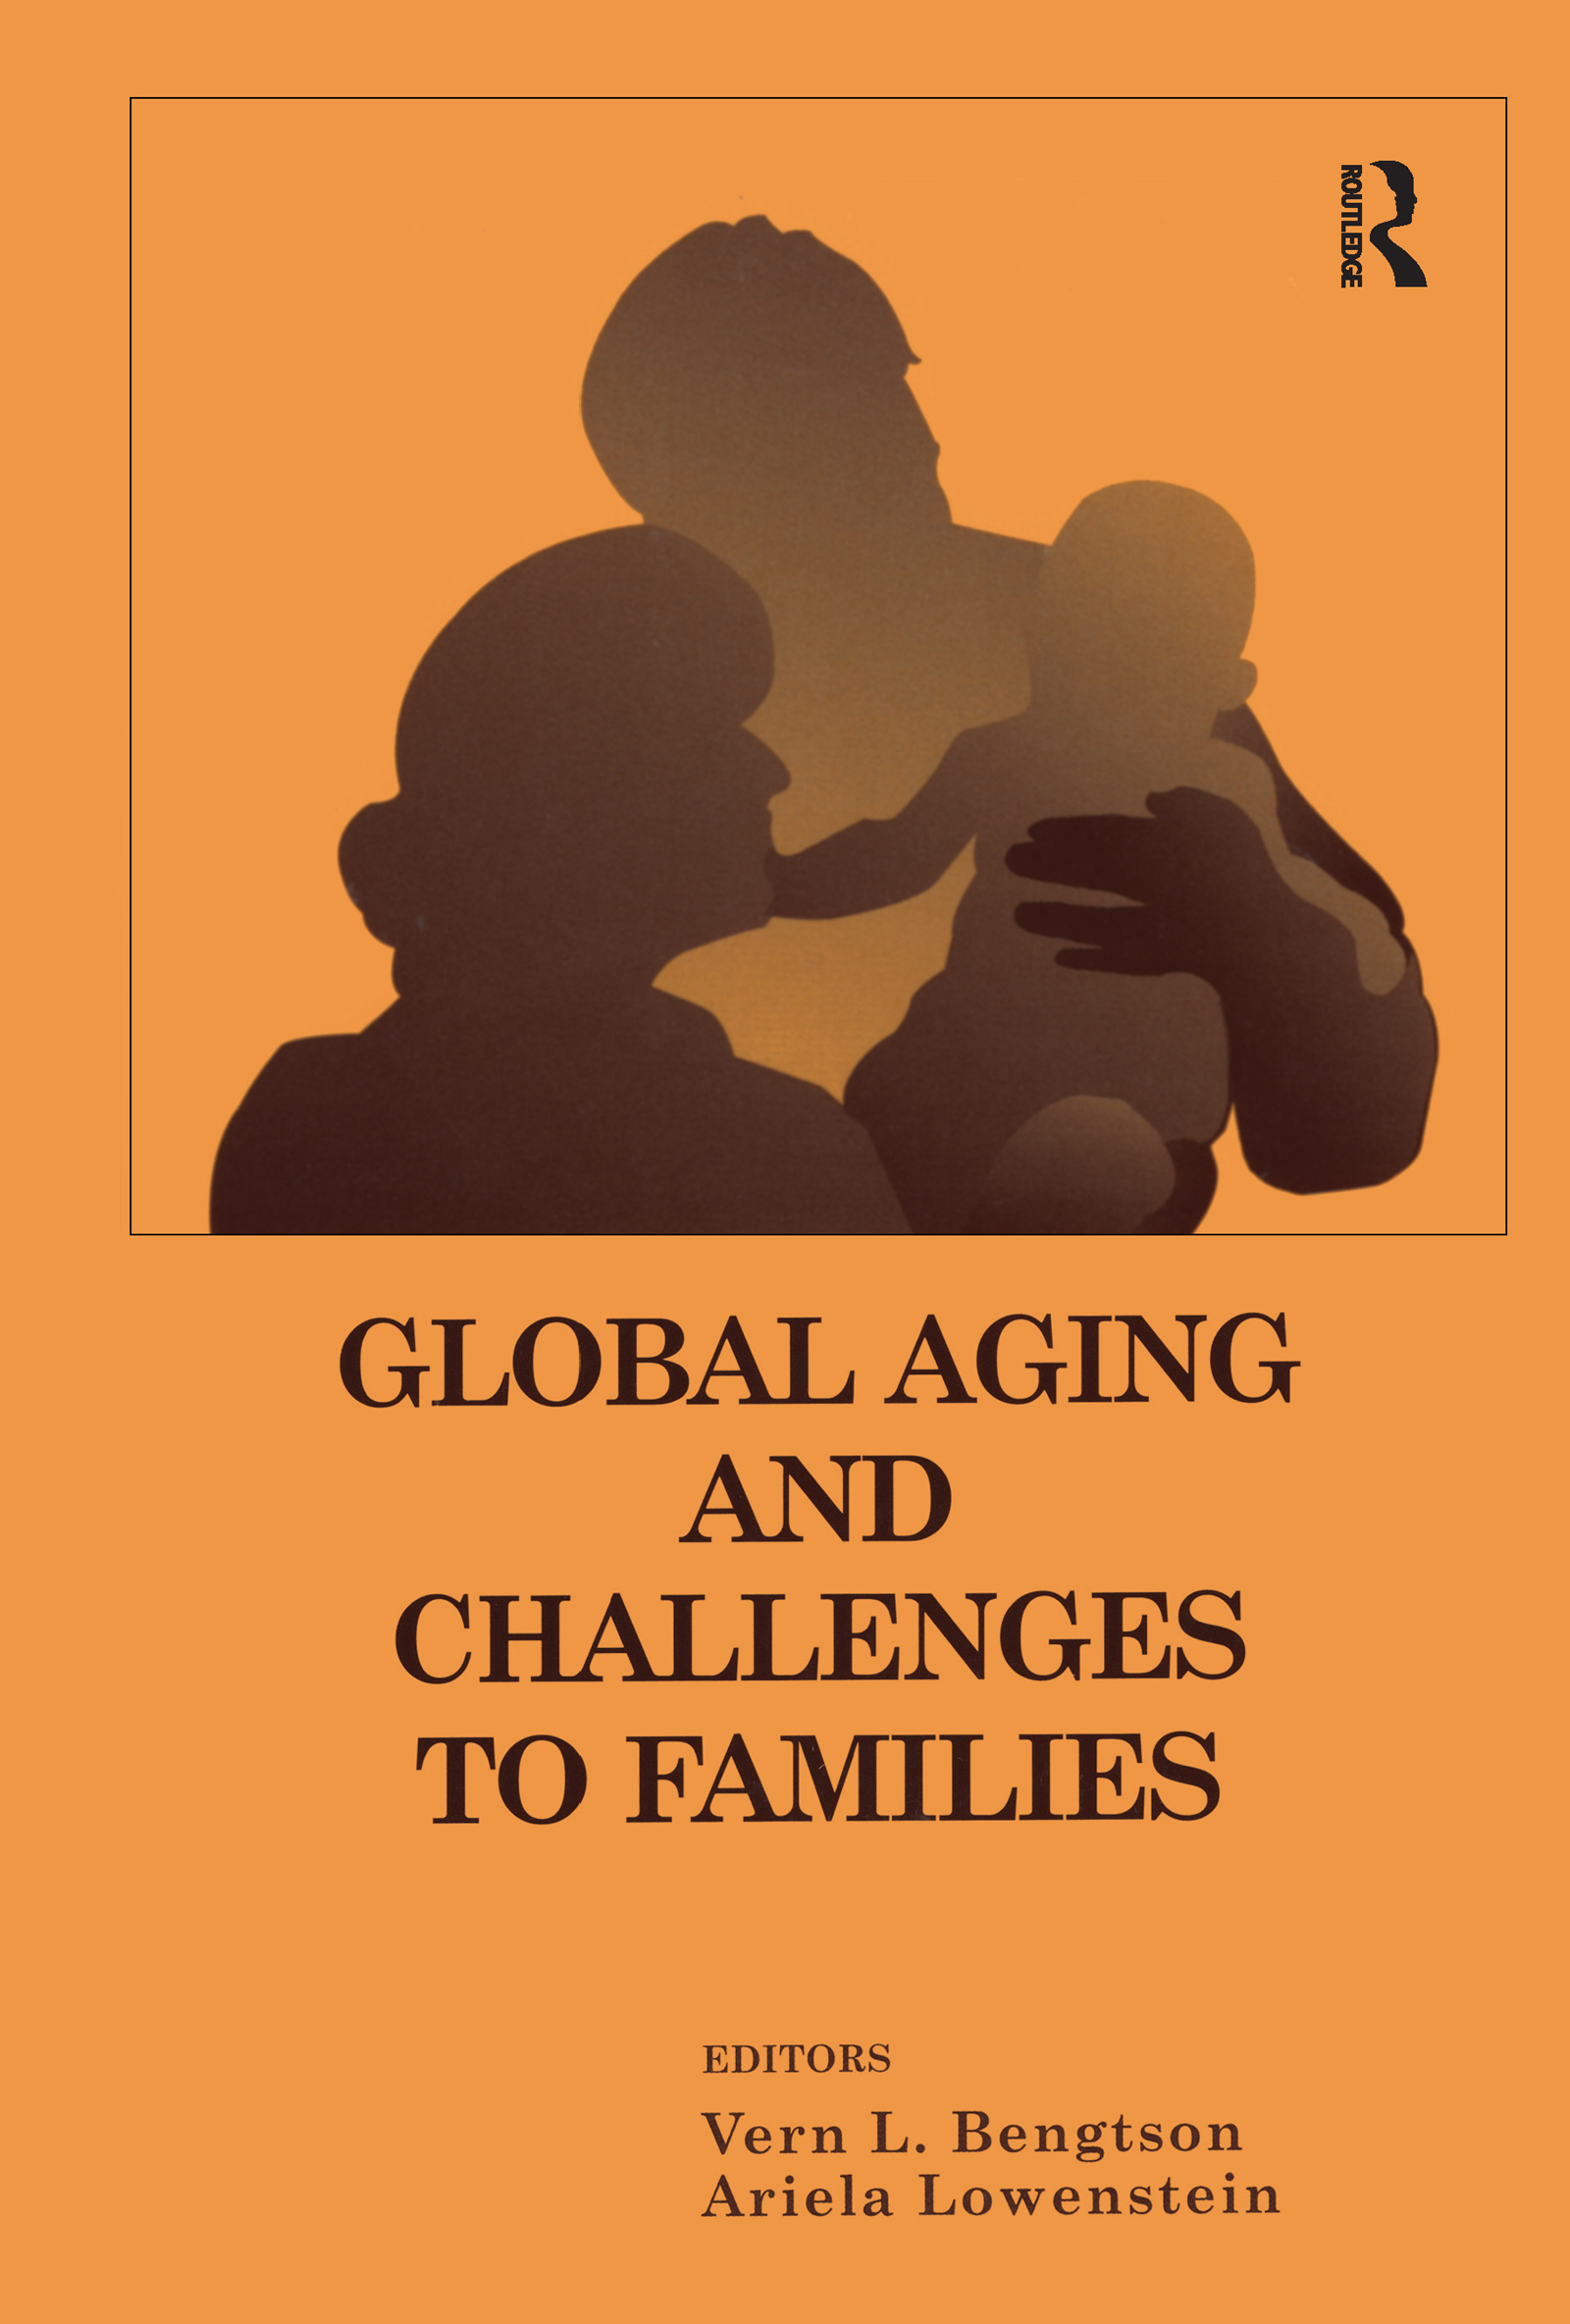 Global Aging and Challenges to Families